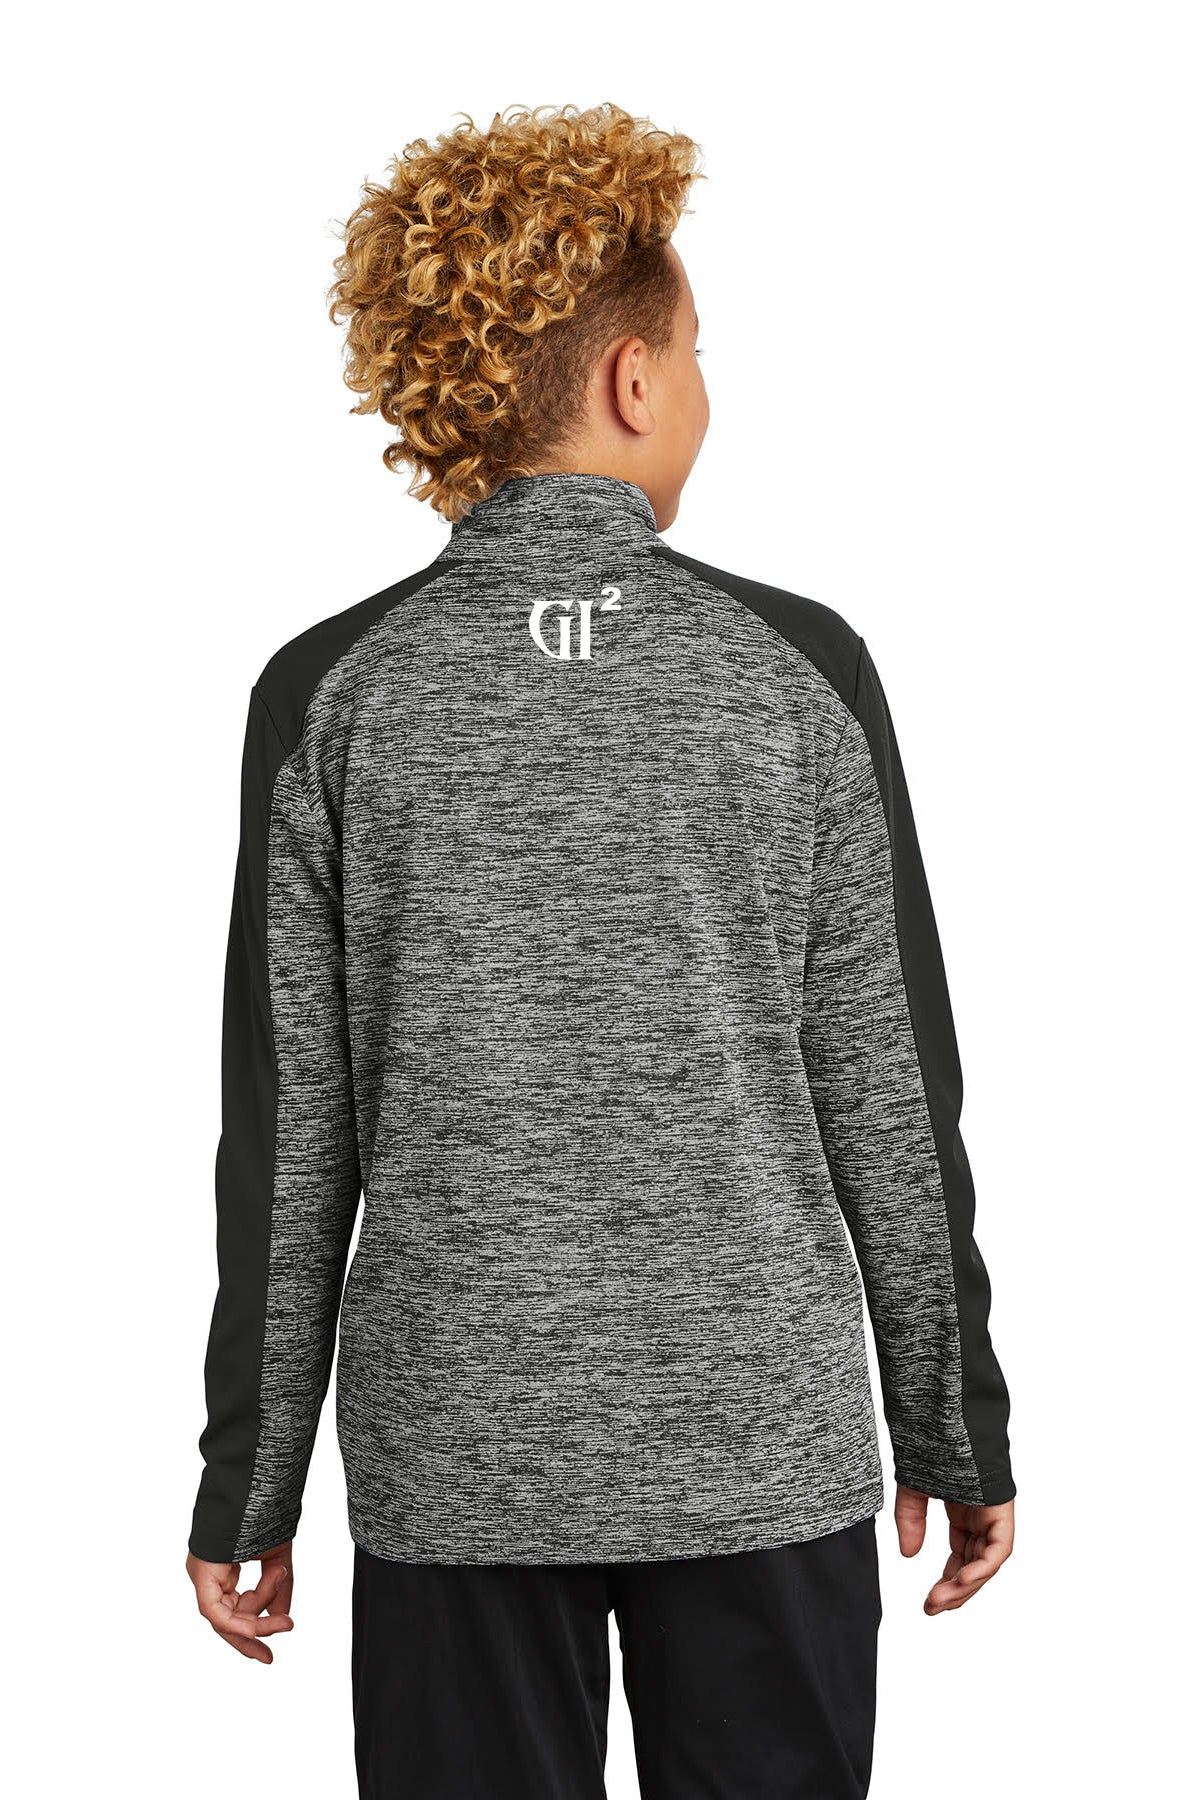 Youth 1/4 zip Heather Pullover - GET IT IN Apparel